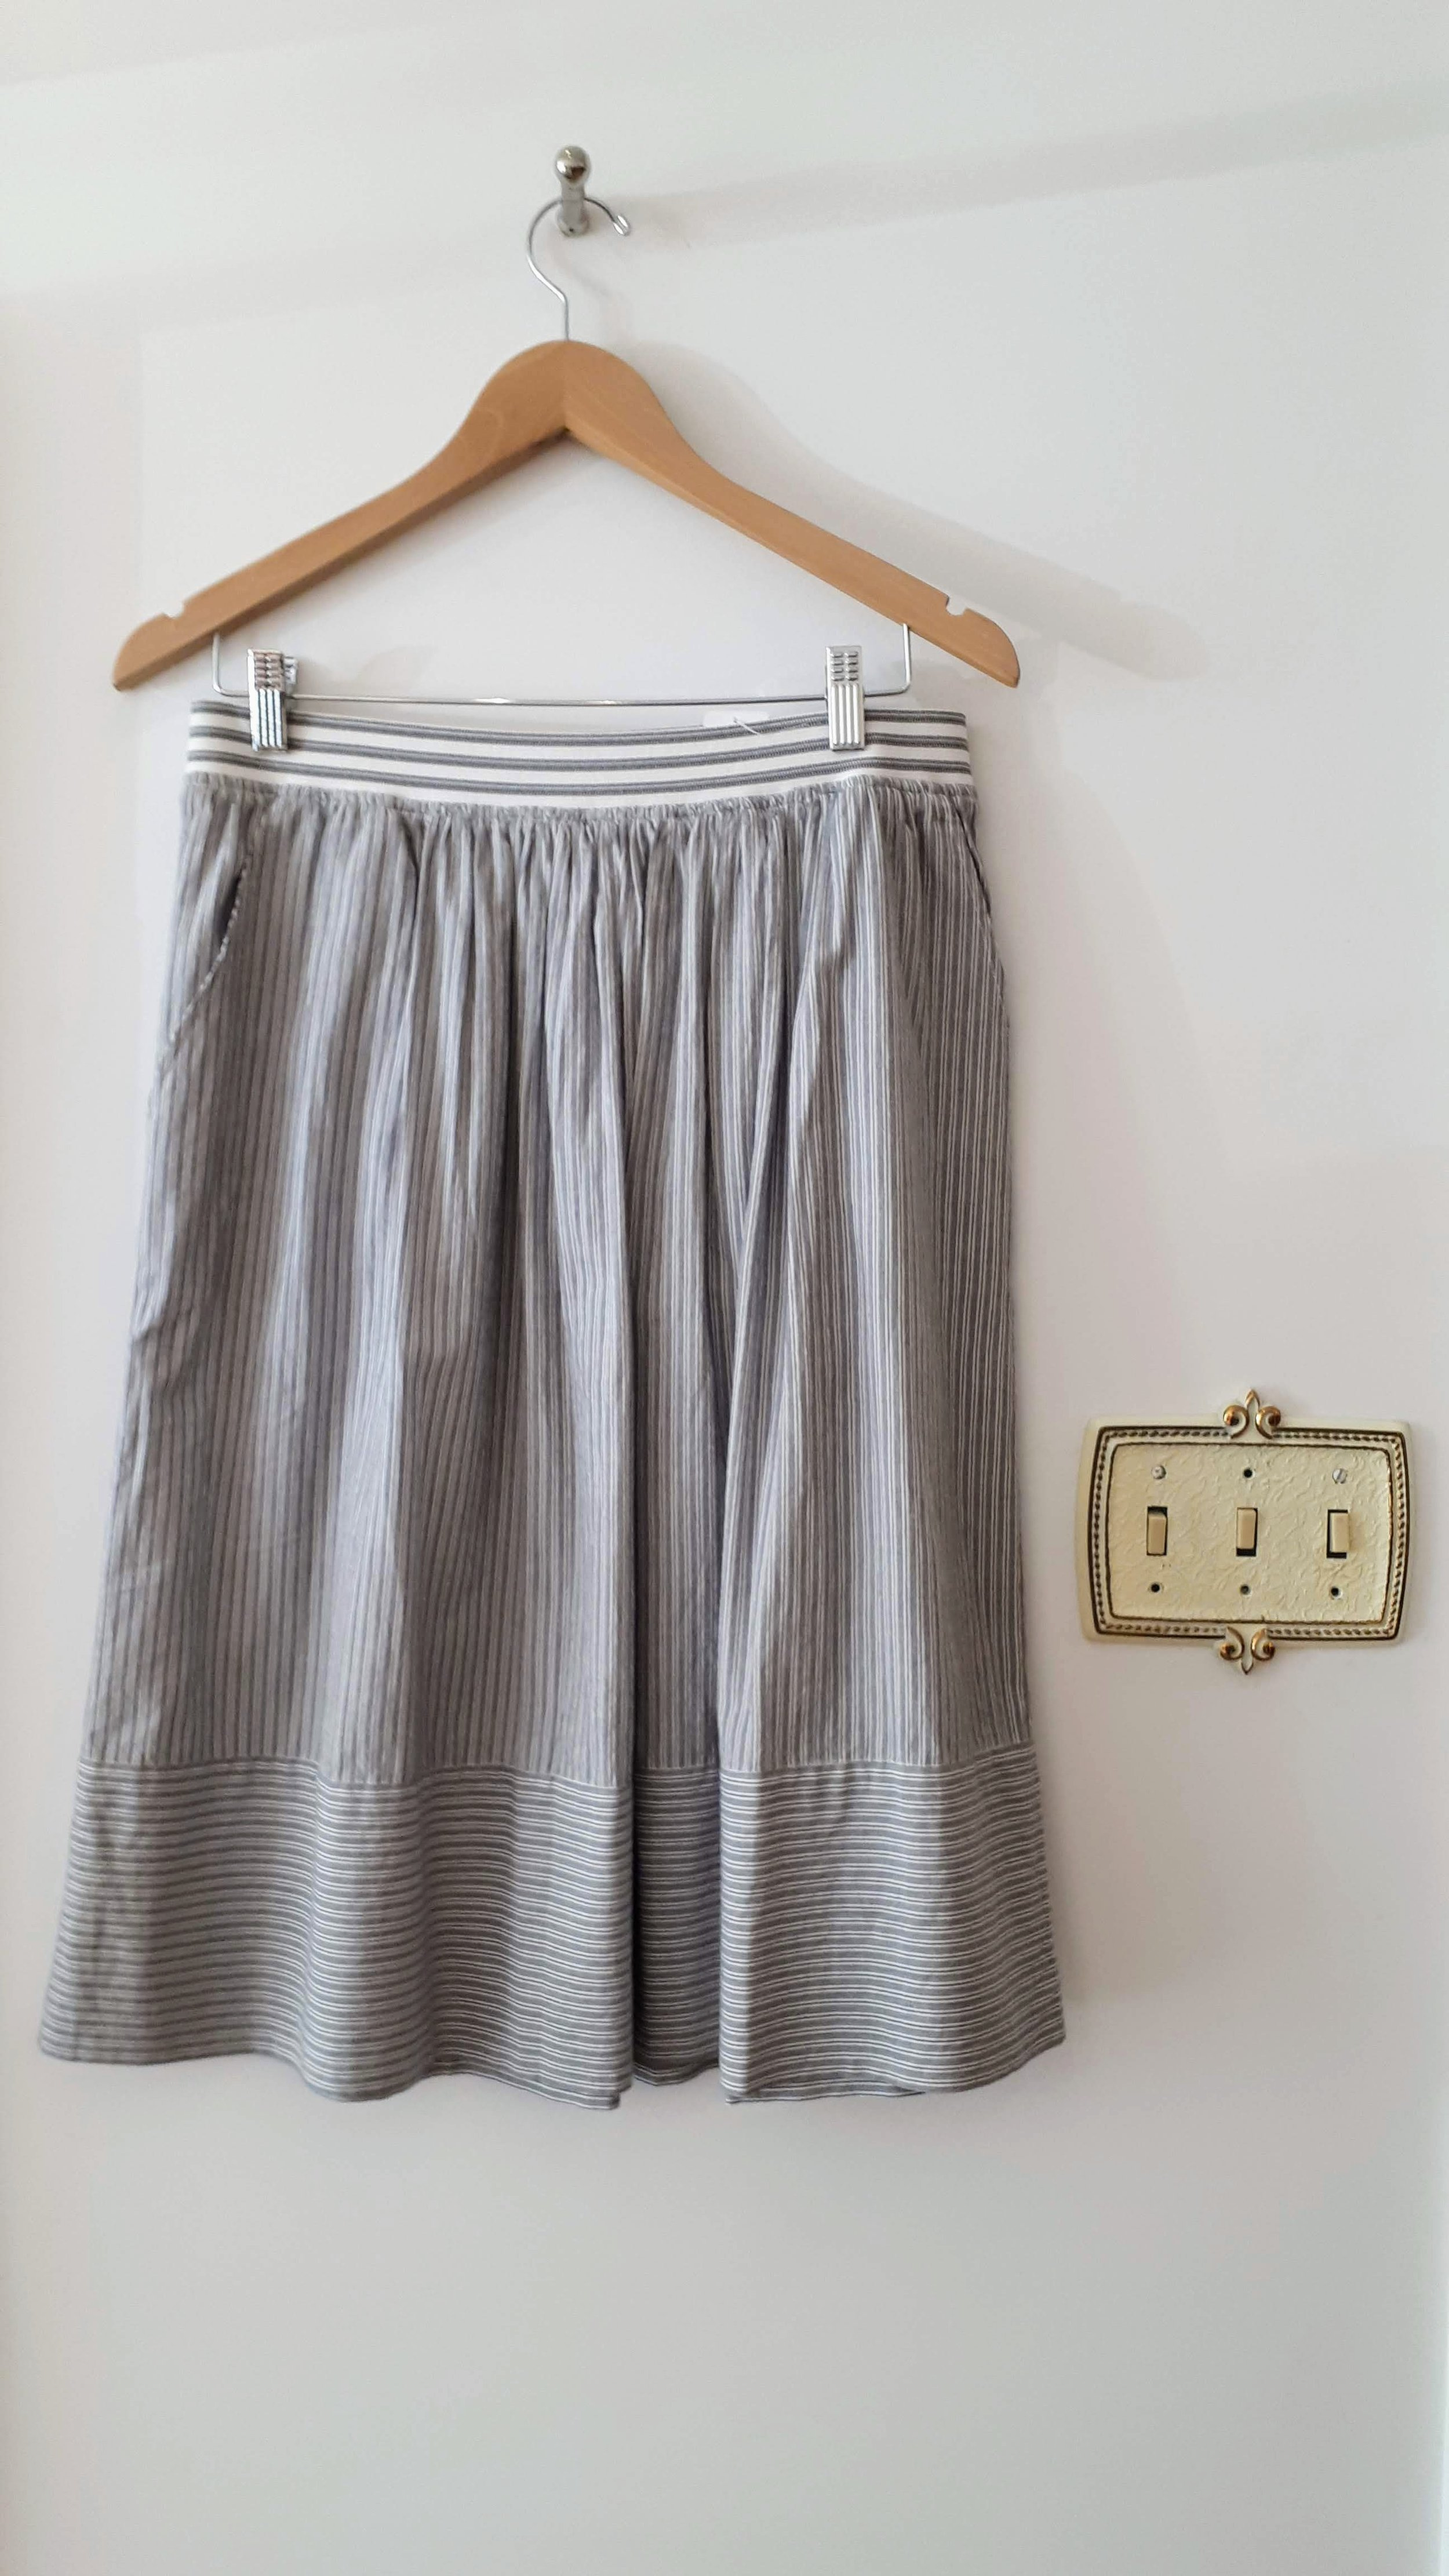 Banana Republic skirt; Size 6, $30 (on sale for $15!)